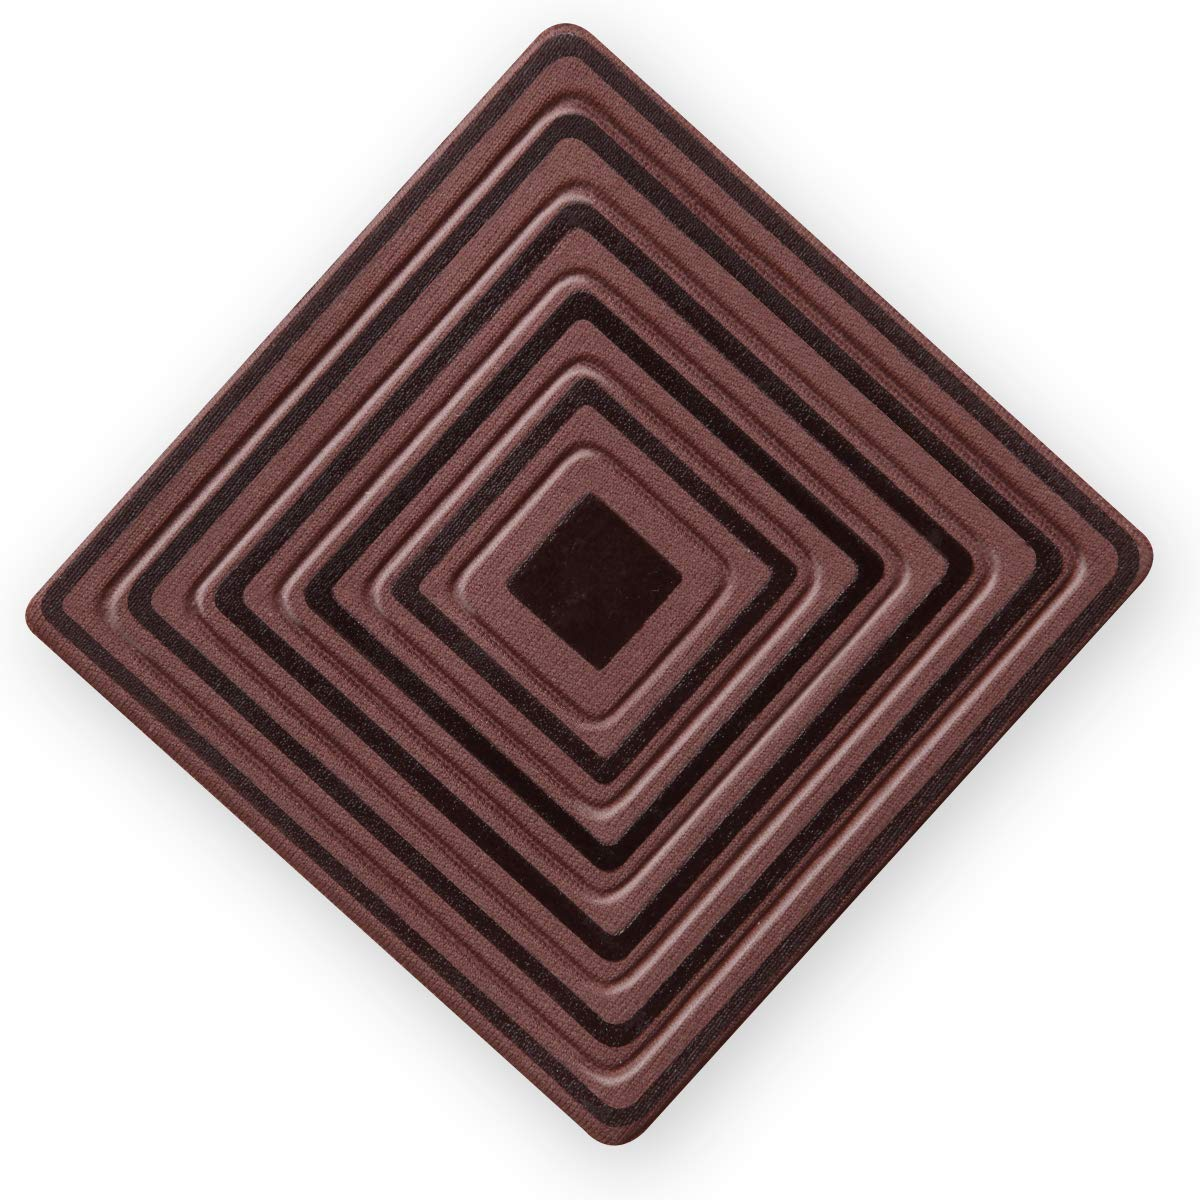 Furniture Pads Furniture Feet Set Of 8 4 Inches Square Or Round 3